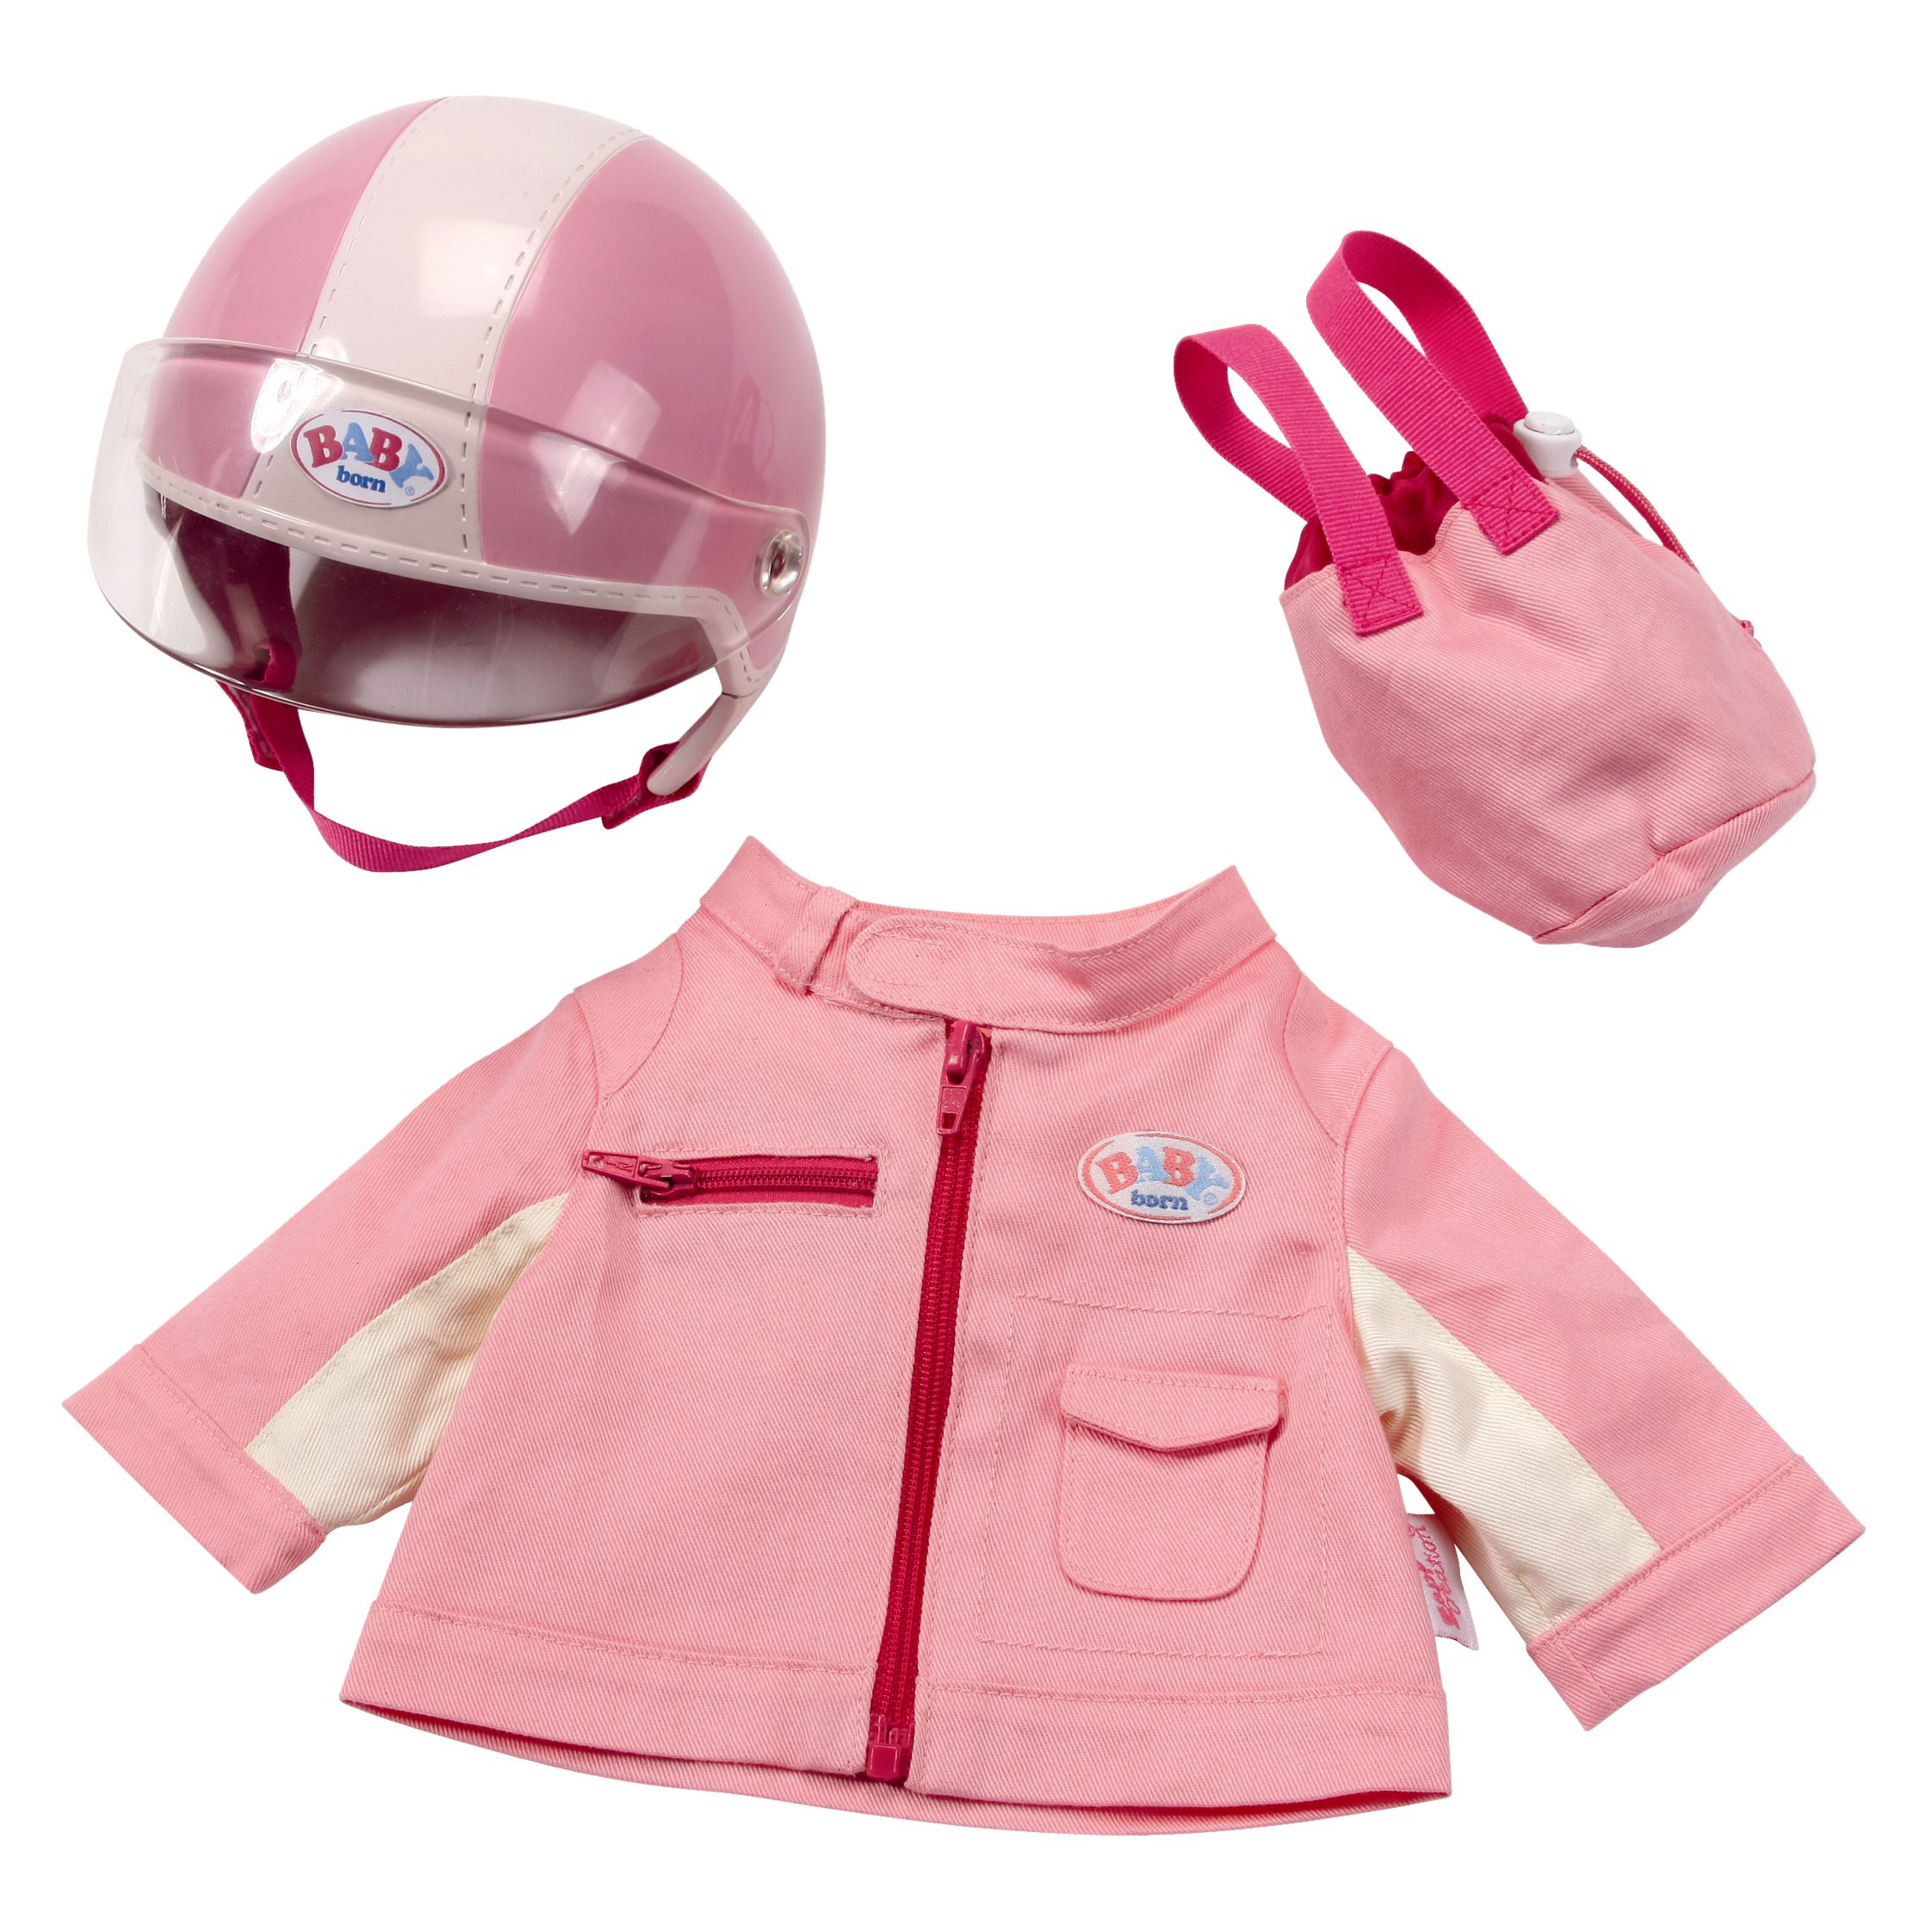 Baby Born Super Deluxe Scooter Outfit Set